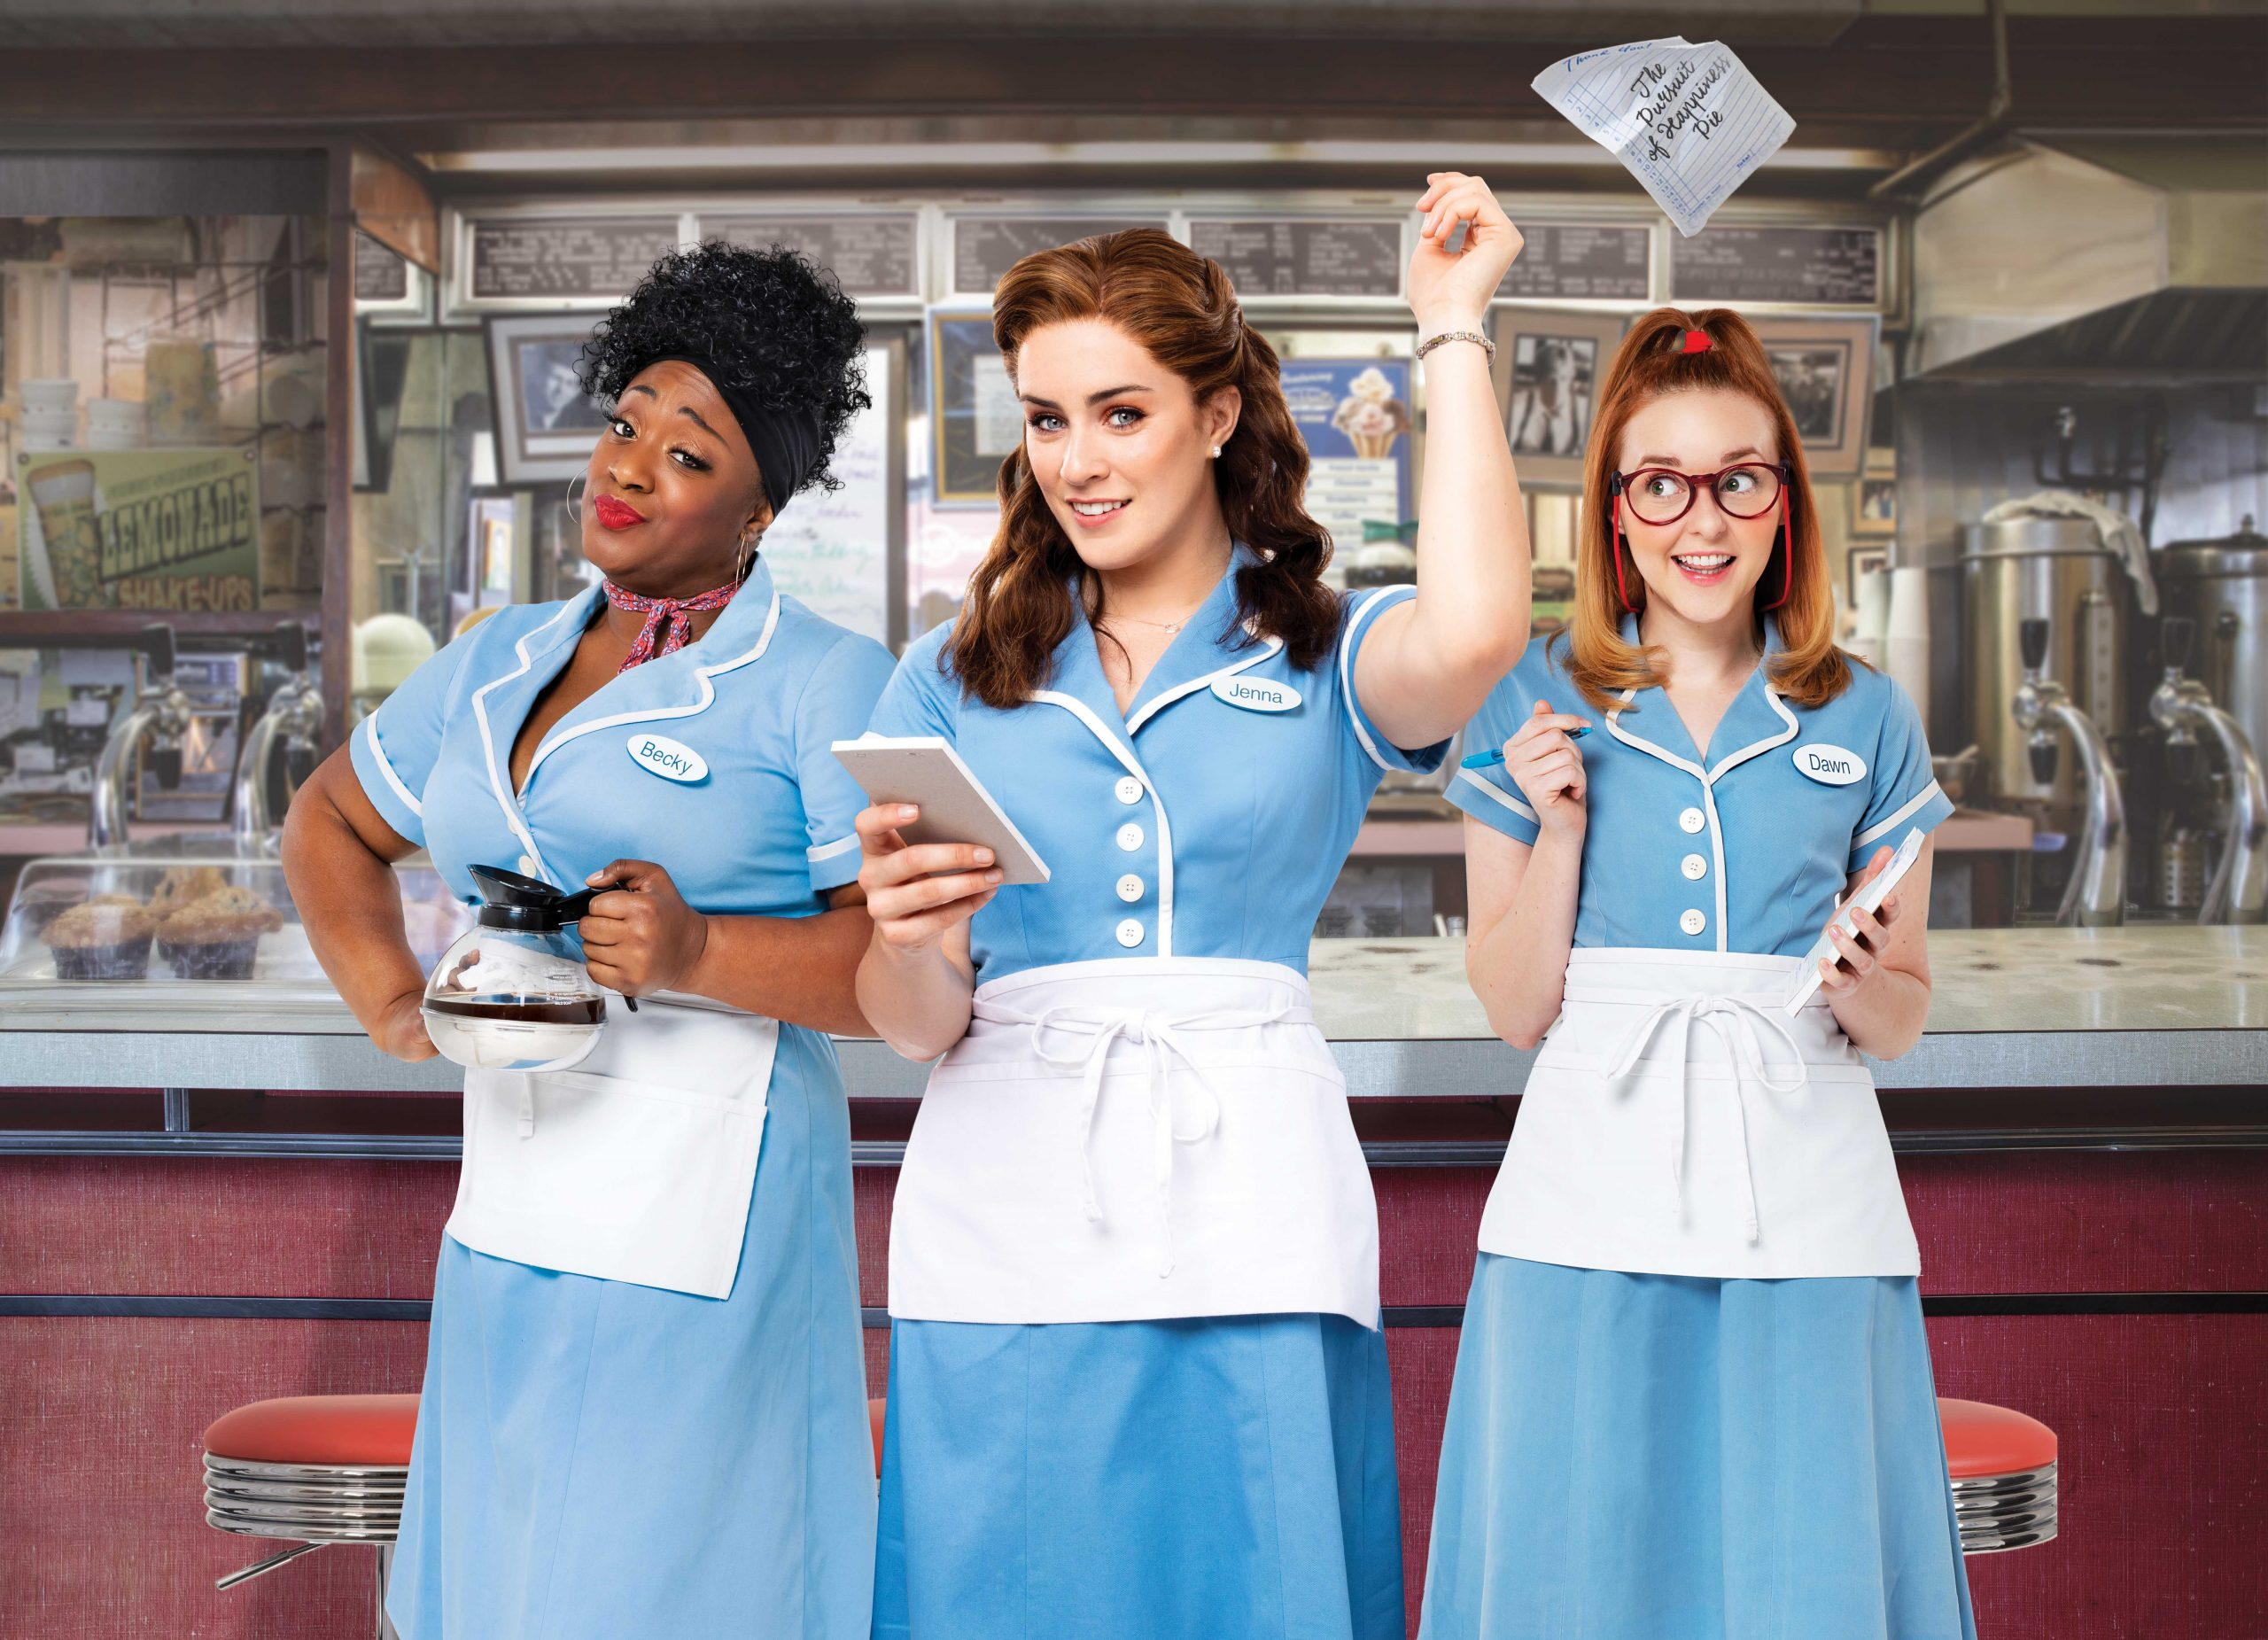 Waitress UK Tour promotional image. Lucie Jones as Jenna, Sandra Marvin as Becky and Evelyn Hoskins as Dawn. All three women are wearing a waitress uniform comprising a pale blue dress with white buttons and a white apron.